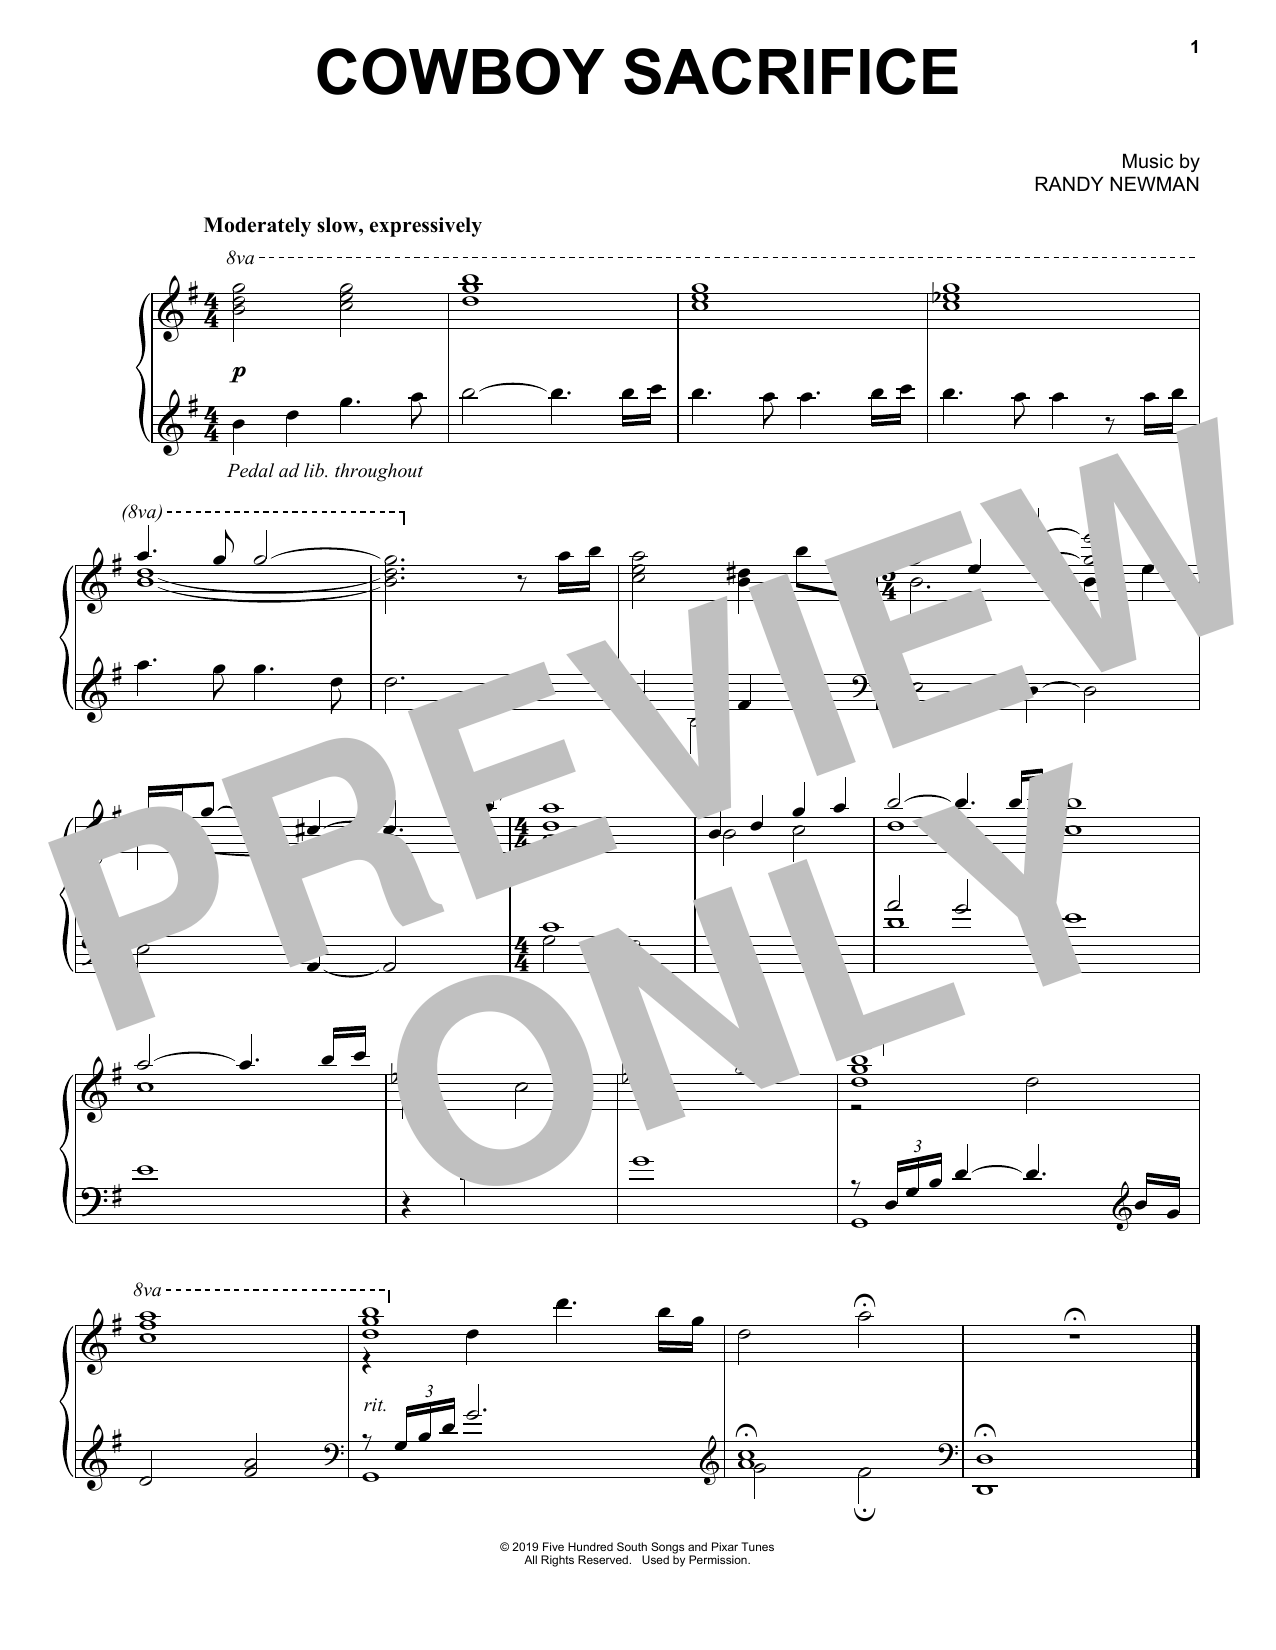 Randy Newman Cowboy Sacrifice (from Toy Story 4) sheet music notes and chords. Download Printable PDF.